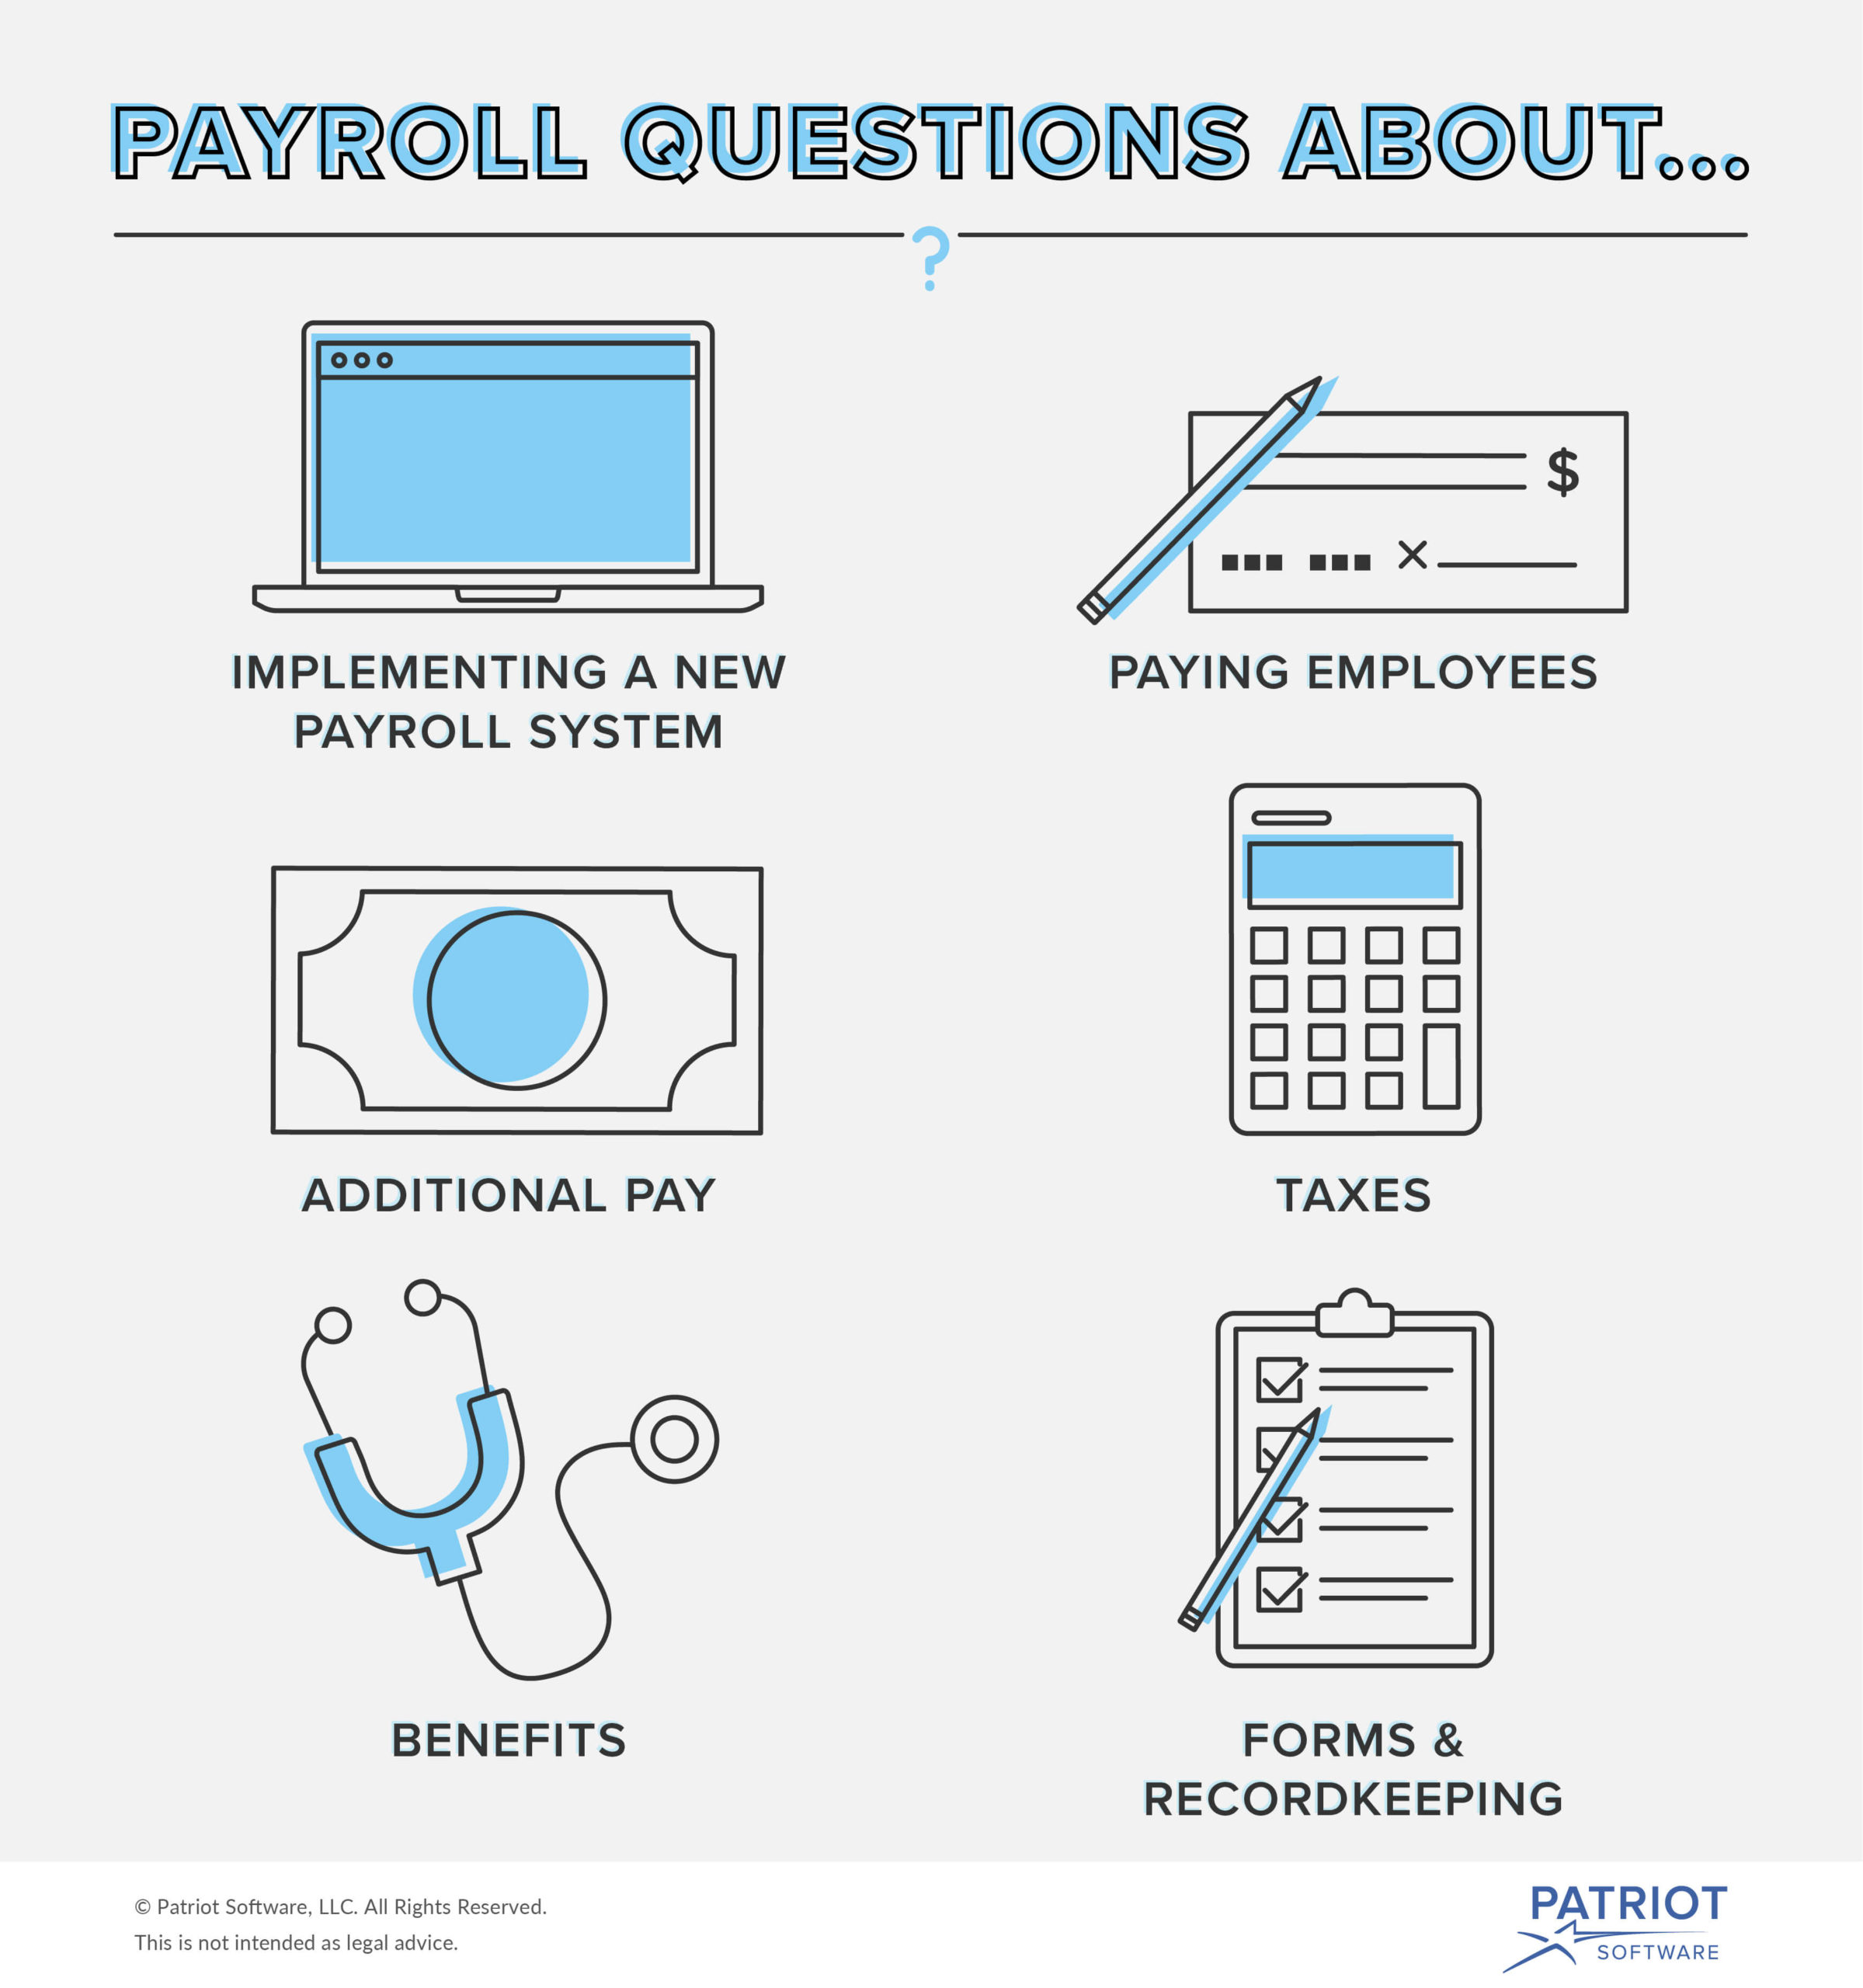 Payroll Questions